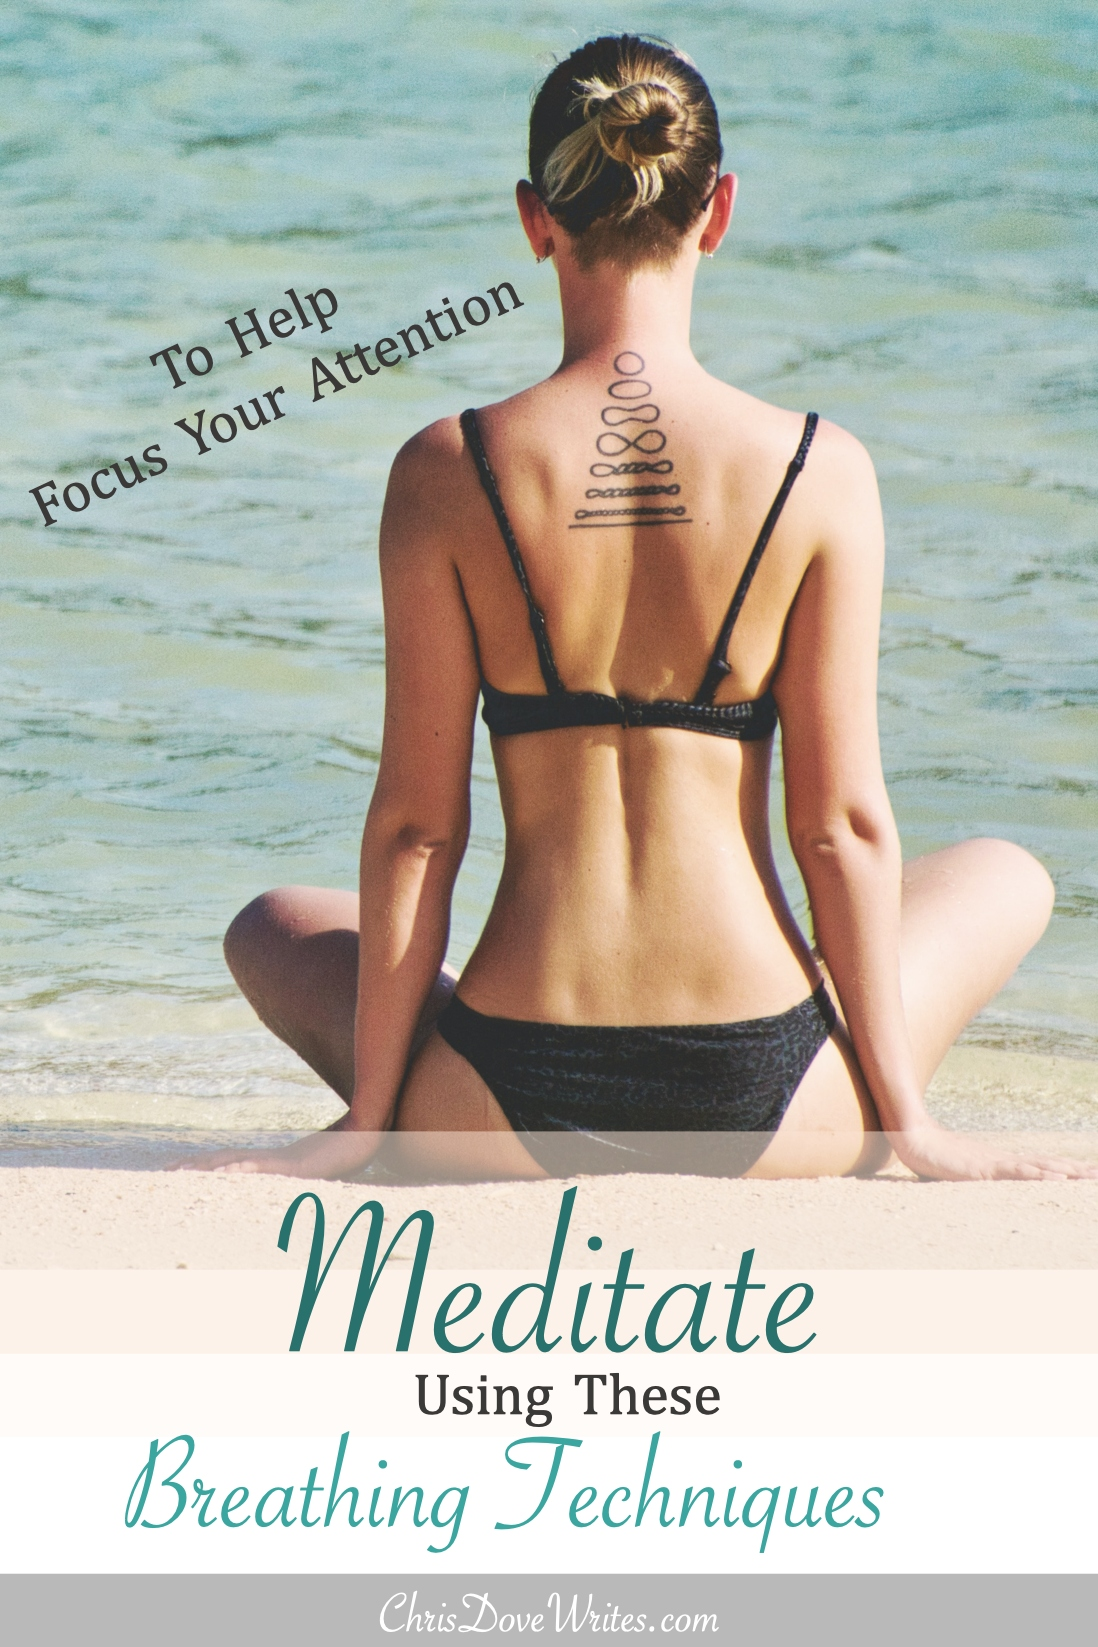 Meditation can bring you into the moment, heightening your awareness